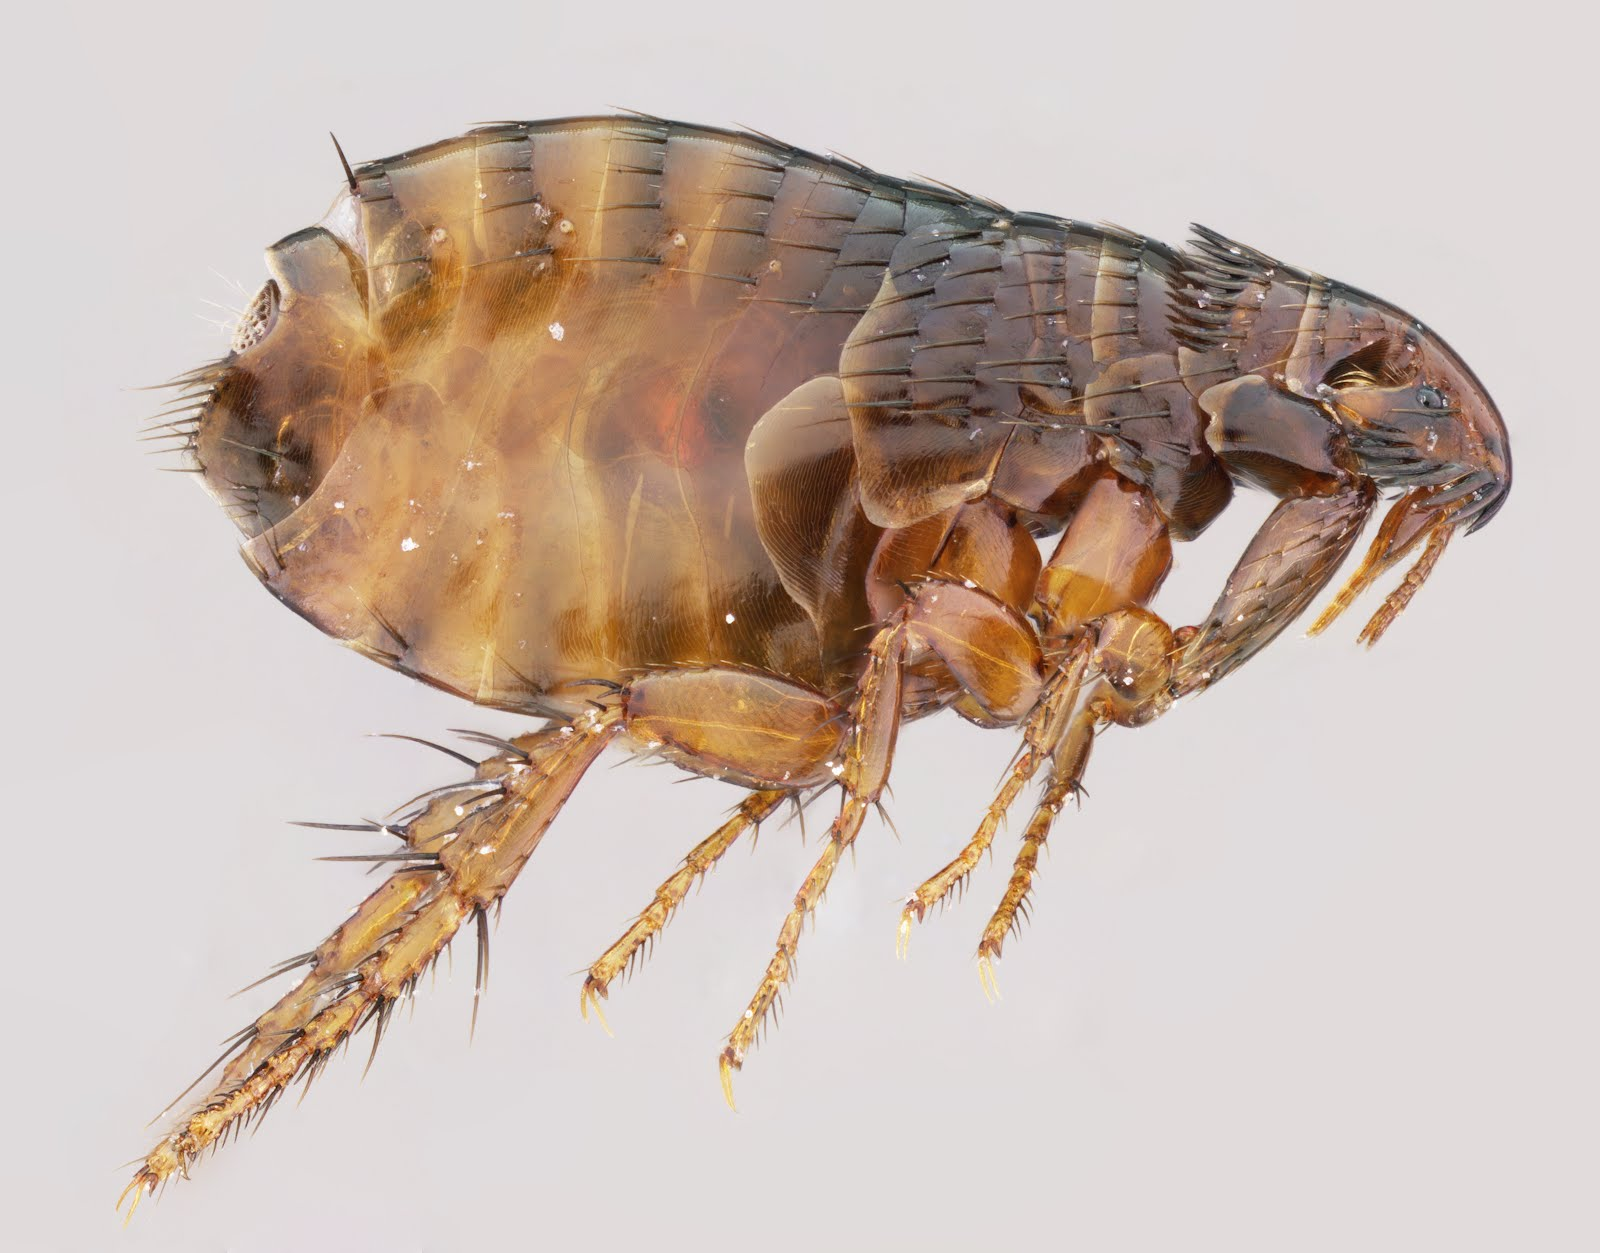 Insect Image of the We...